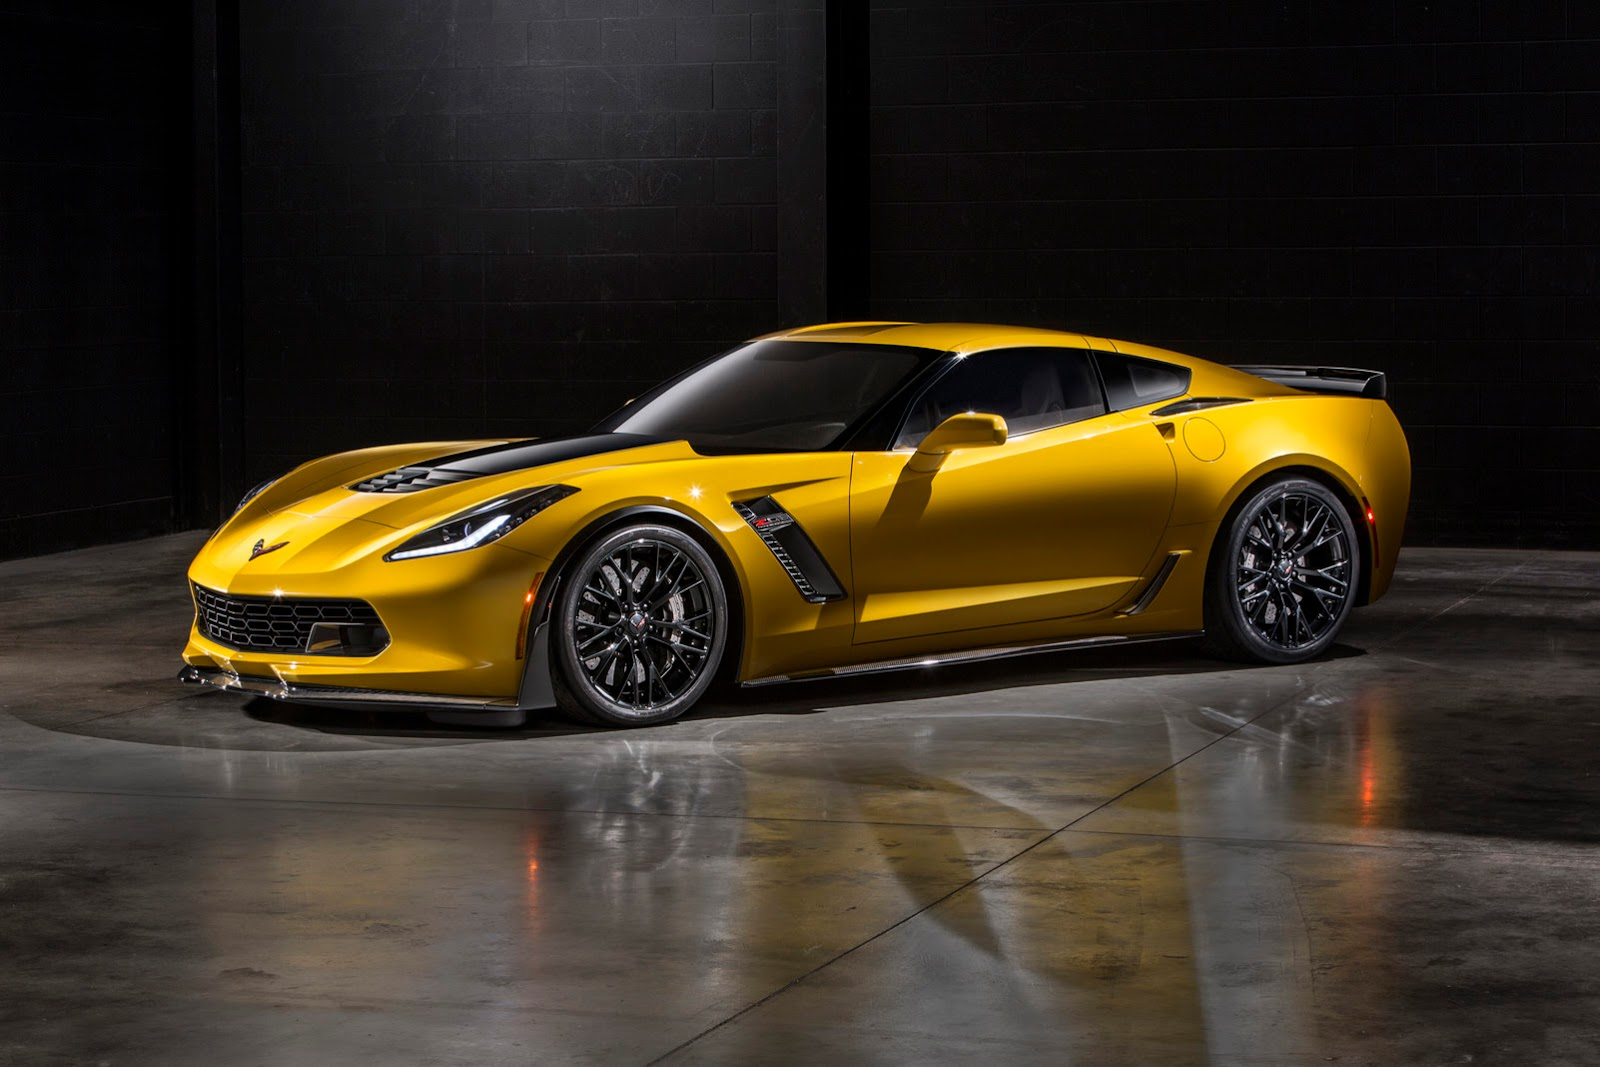 The 2015 Corvette Z06 will deliver unprecedented levels of aerodynamic